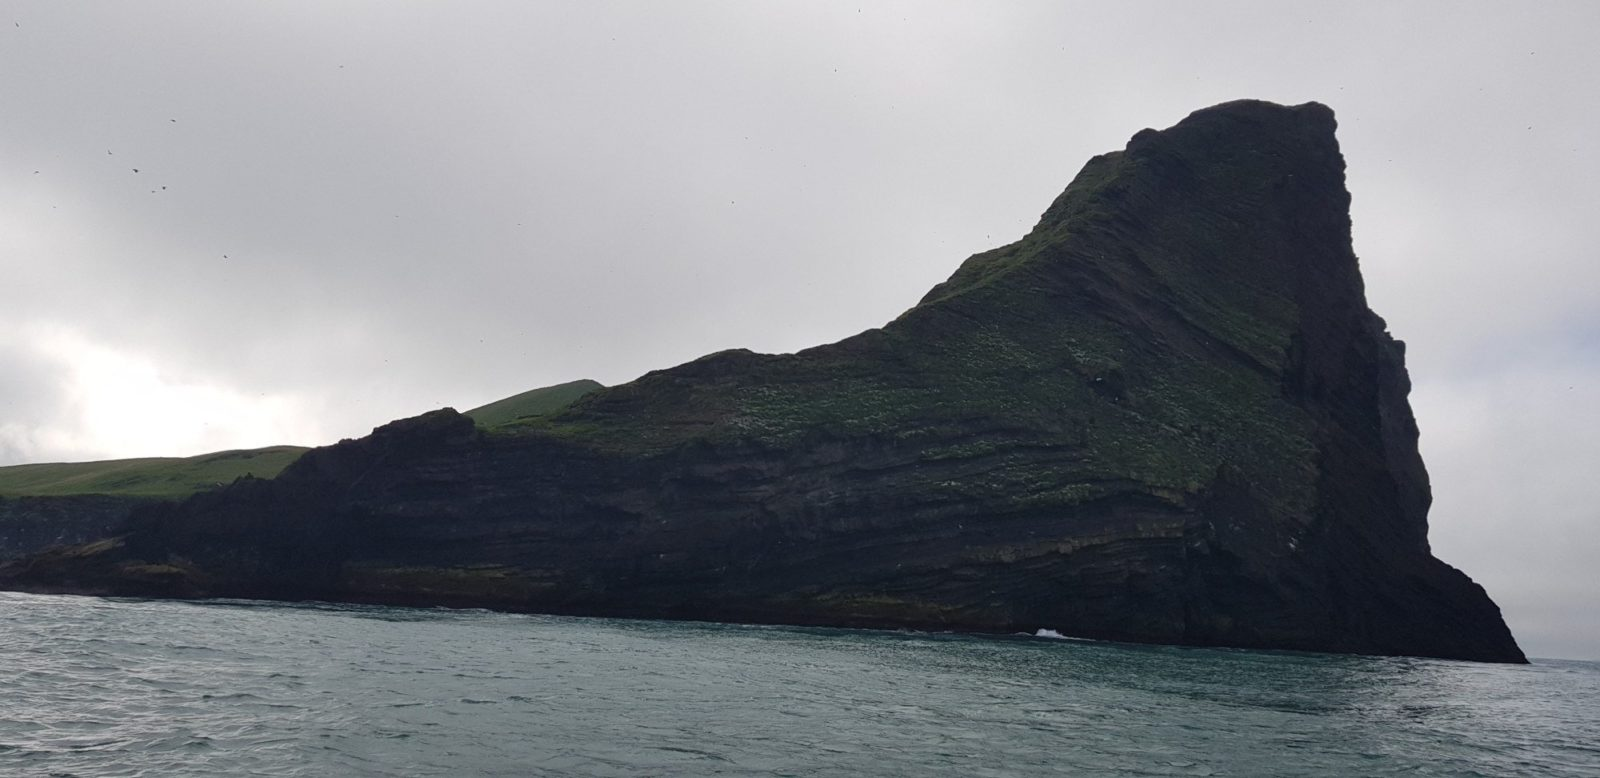 Elliðaey island - a part of the Westman Islands.